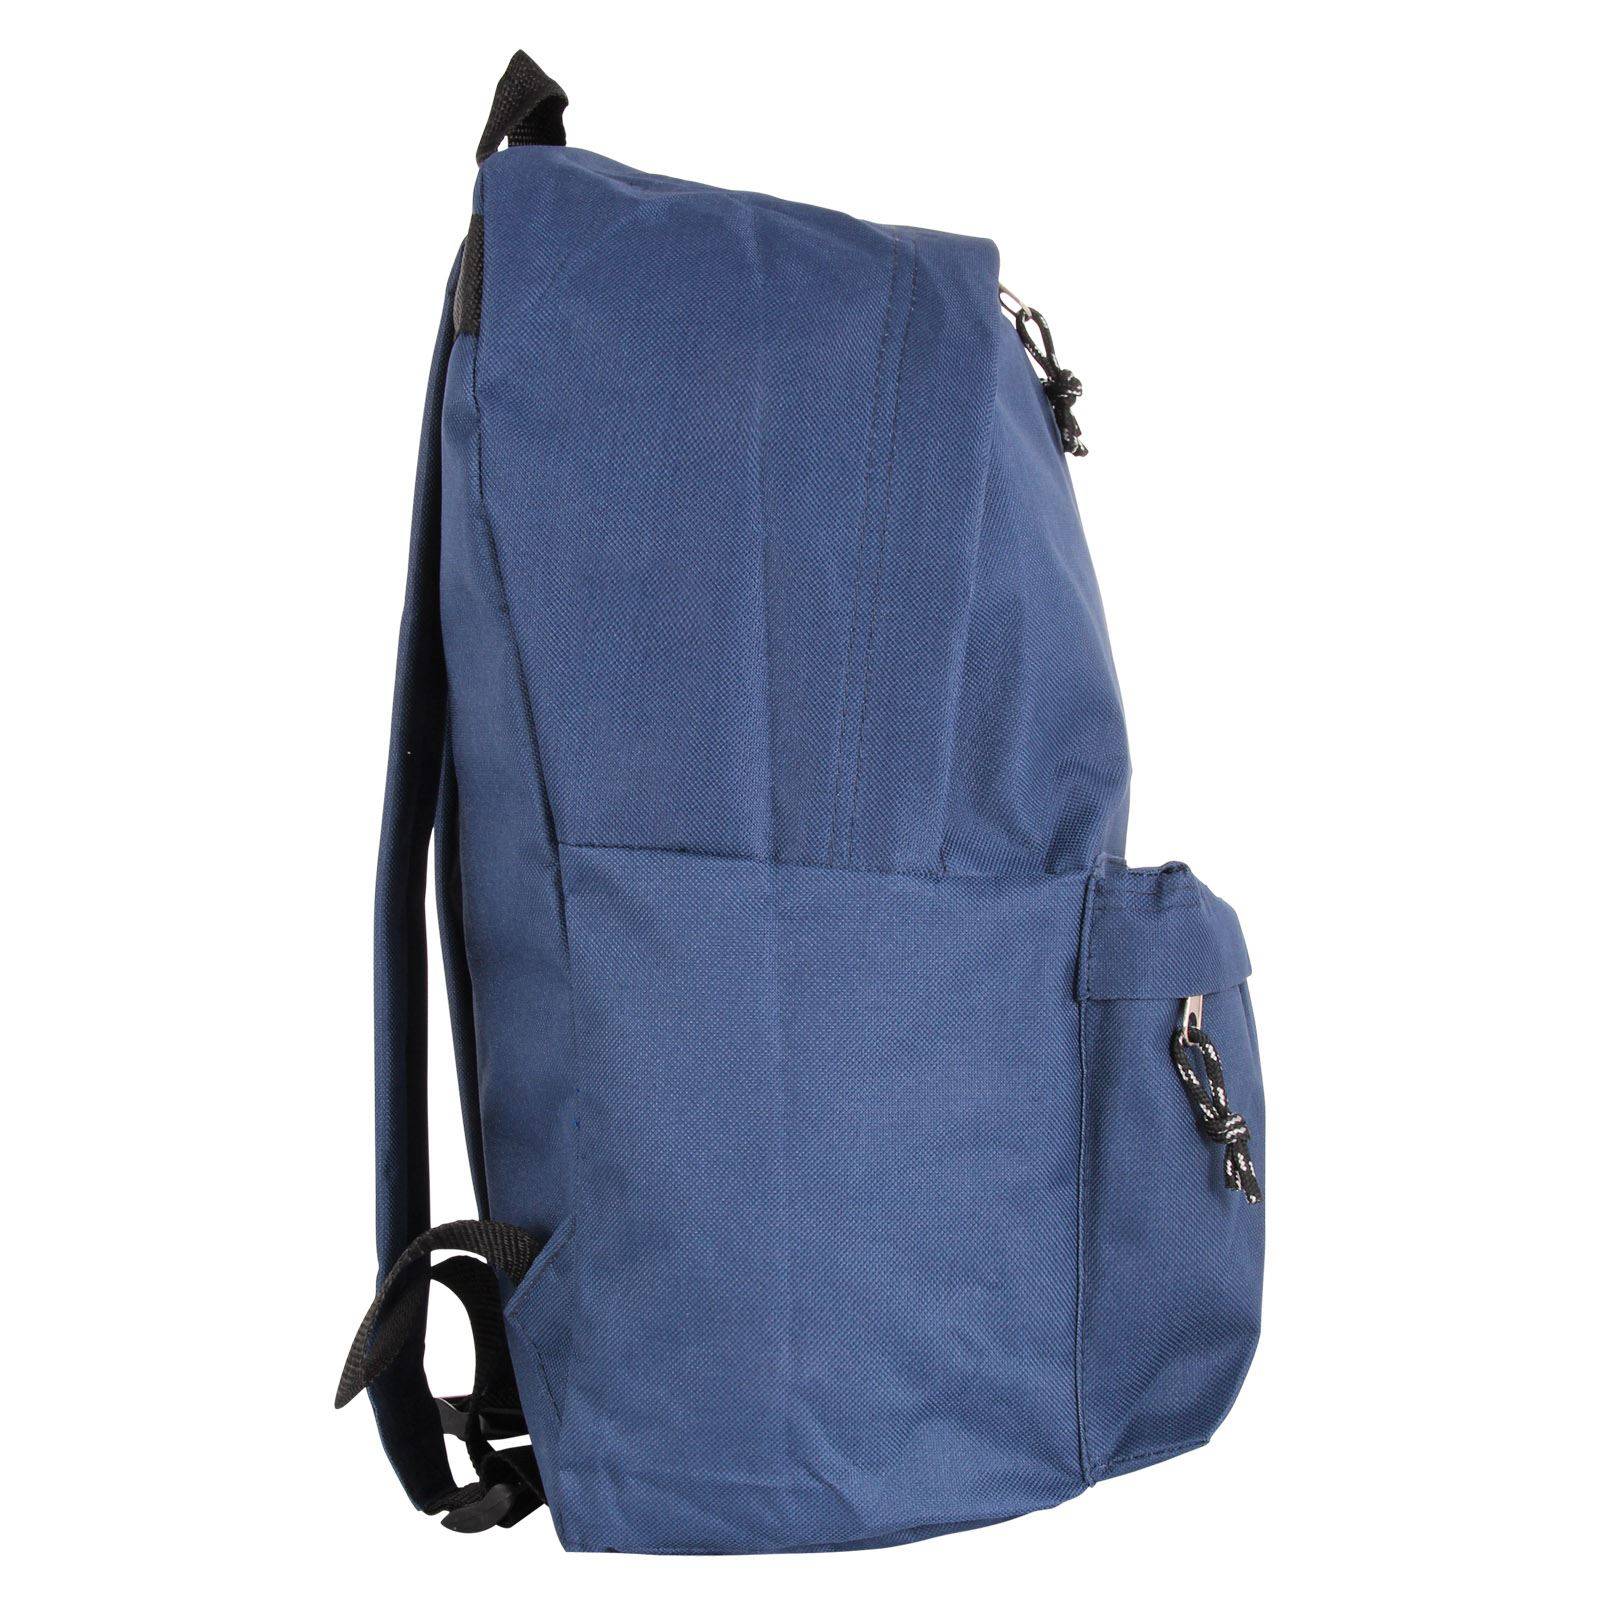 Mens-Boys-Rucksack-Backpack-School-Bag-Work-Travel-Camping-Gym-Hand-Luggage